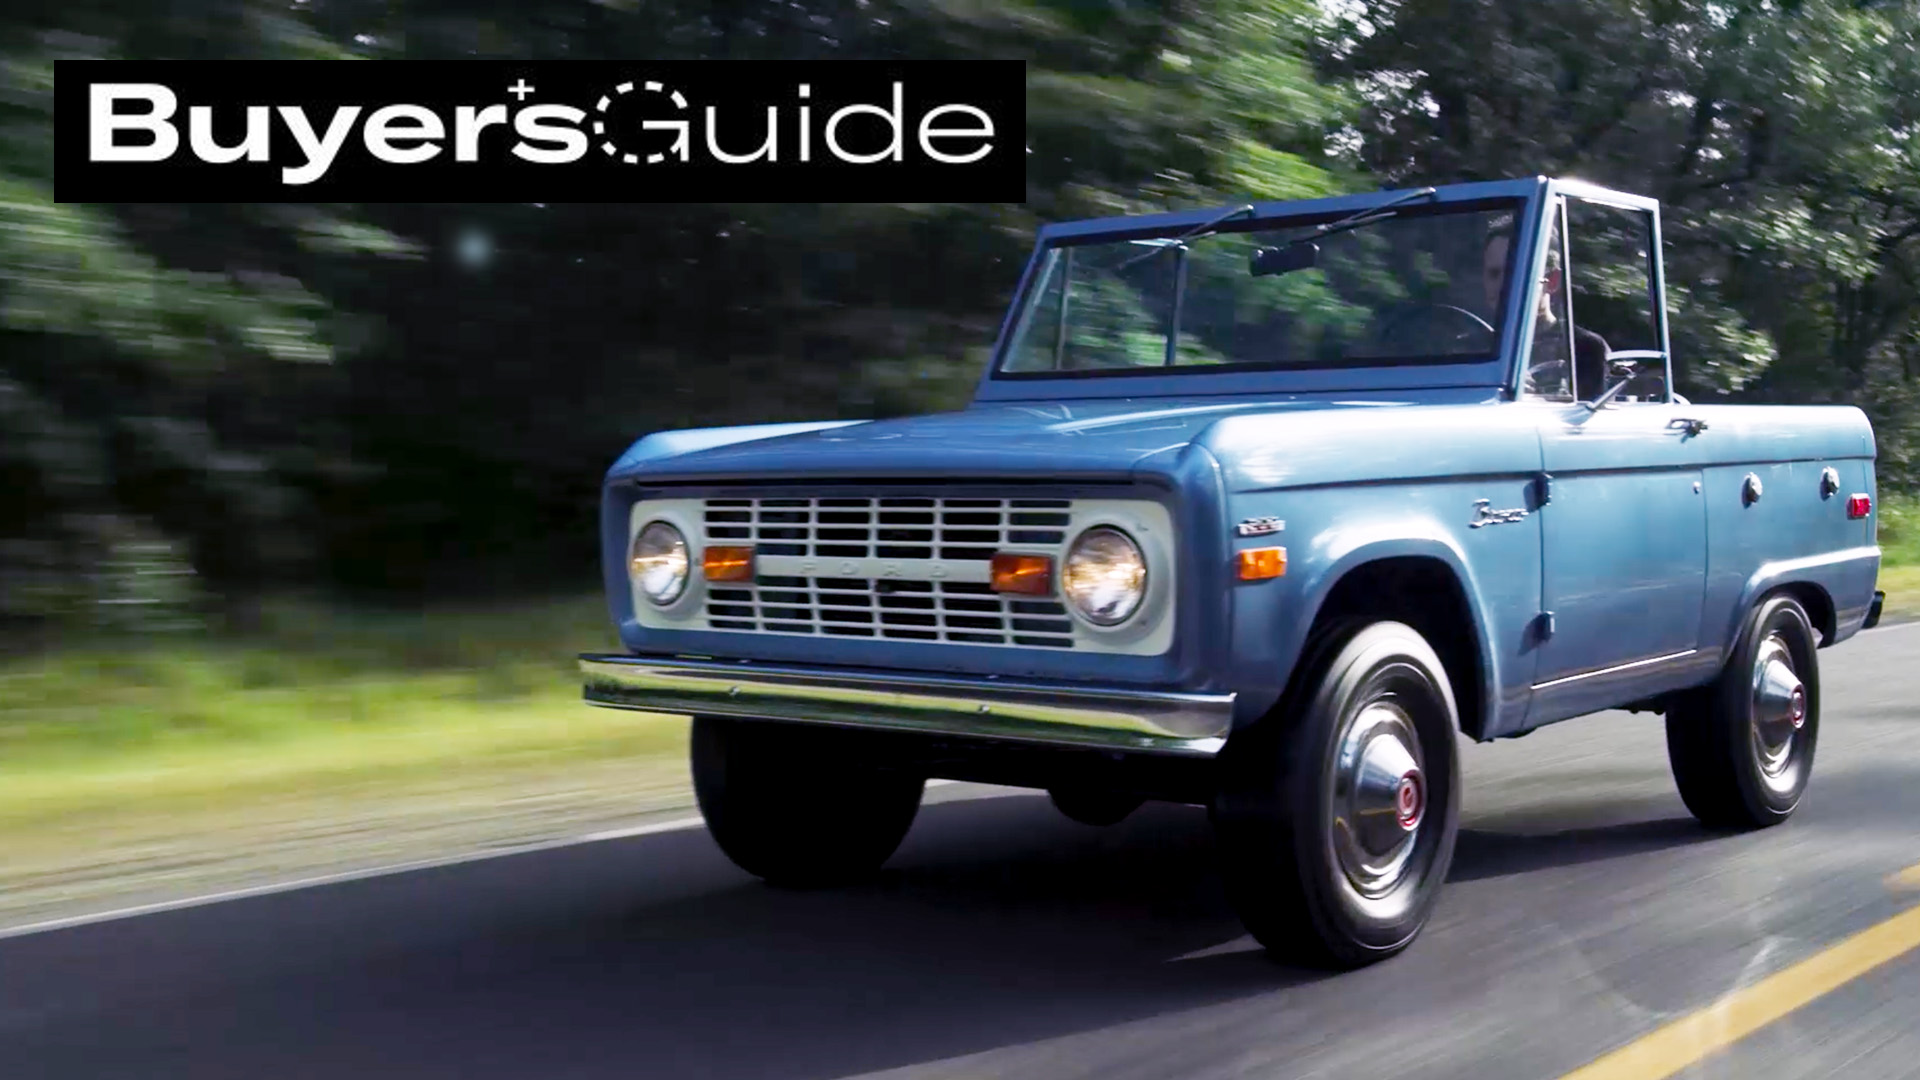 First Gen Ford Bronco Buyers Guide